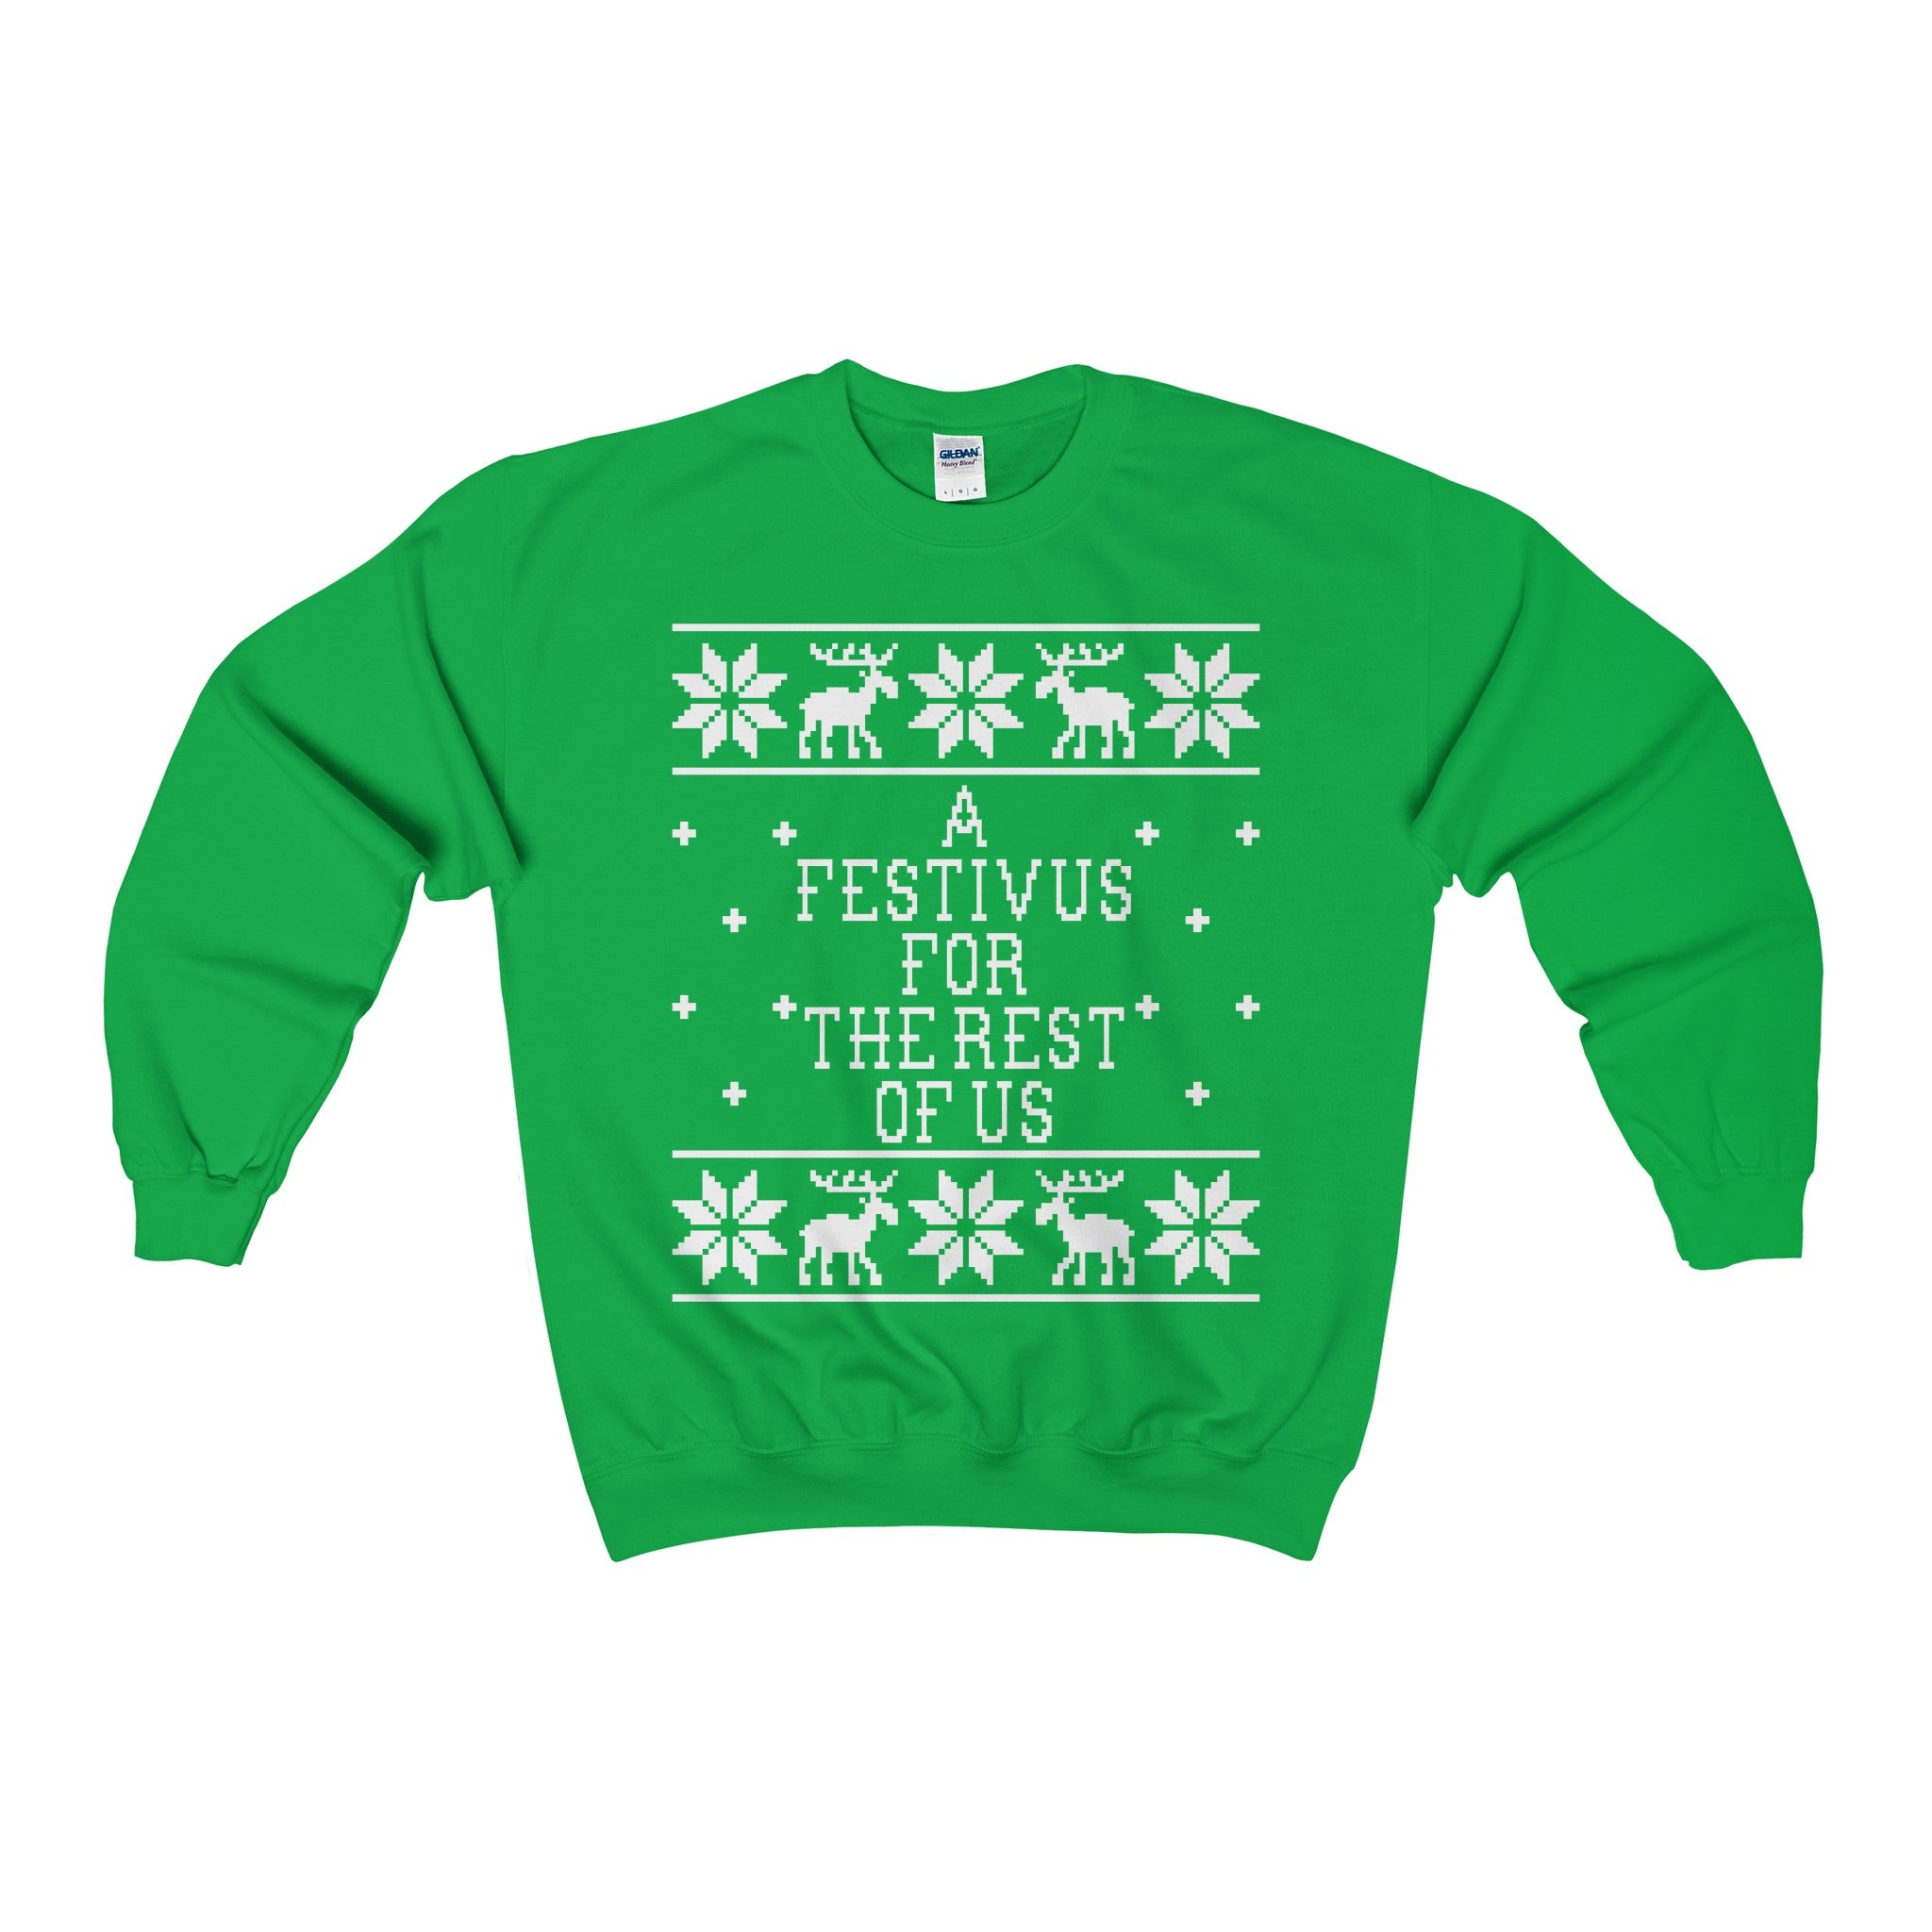 A Festivus For The Rest Of Us - Unisex Christmas Sweater